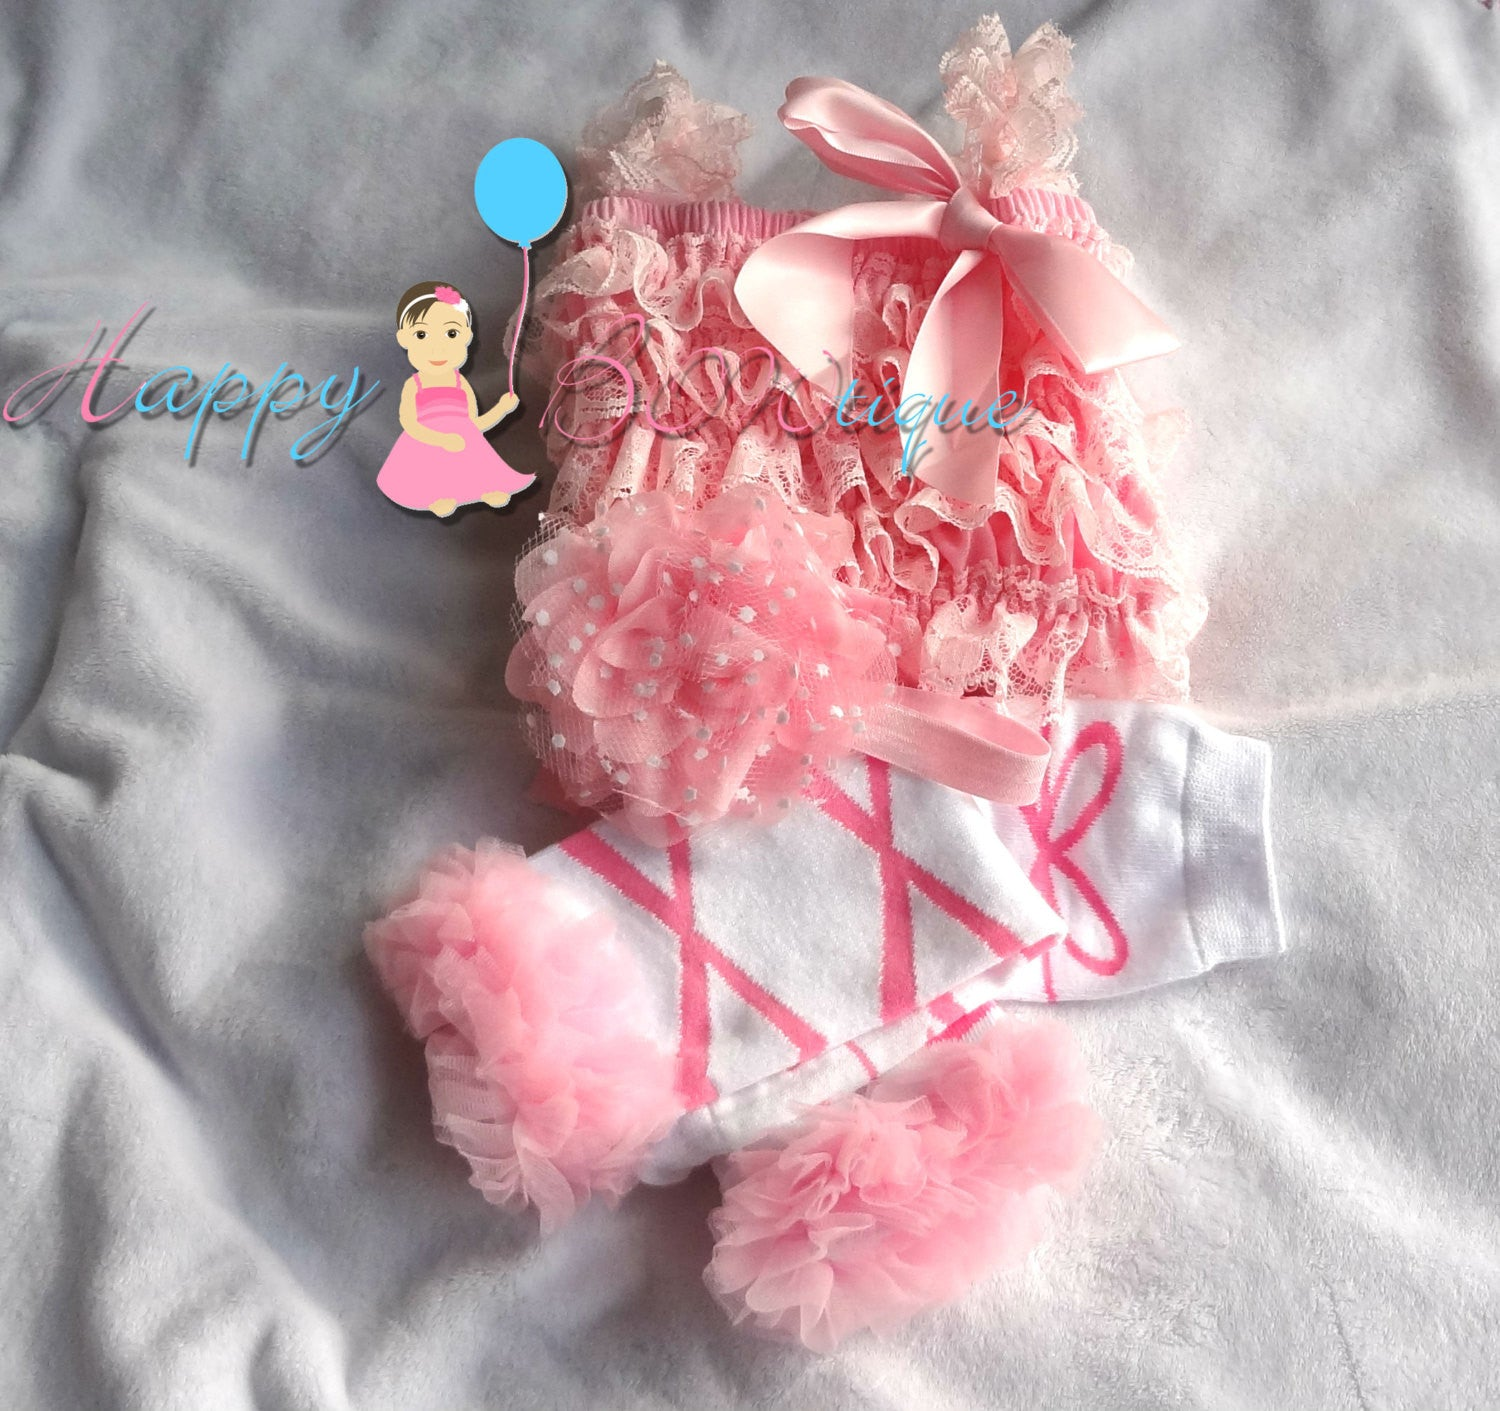 Hot Pink Ballerina Lace Petti Romper set - Happy BOWtique - children's clothing, Baby Girl clothing